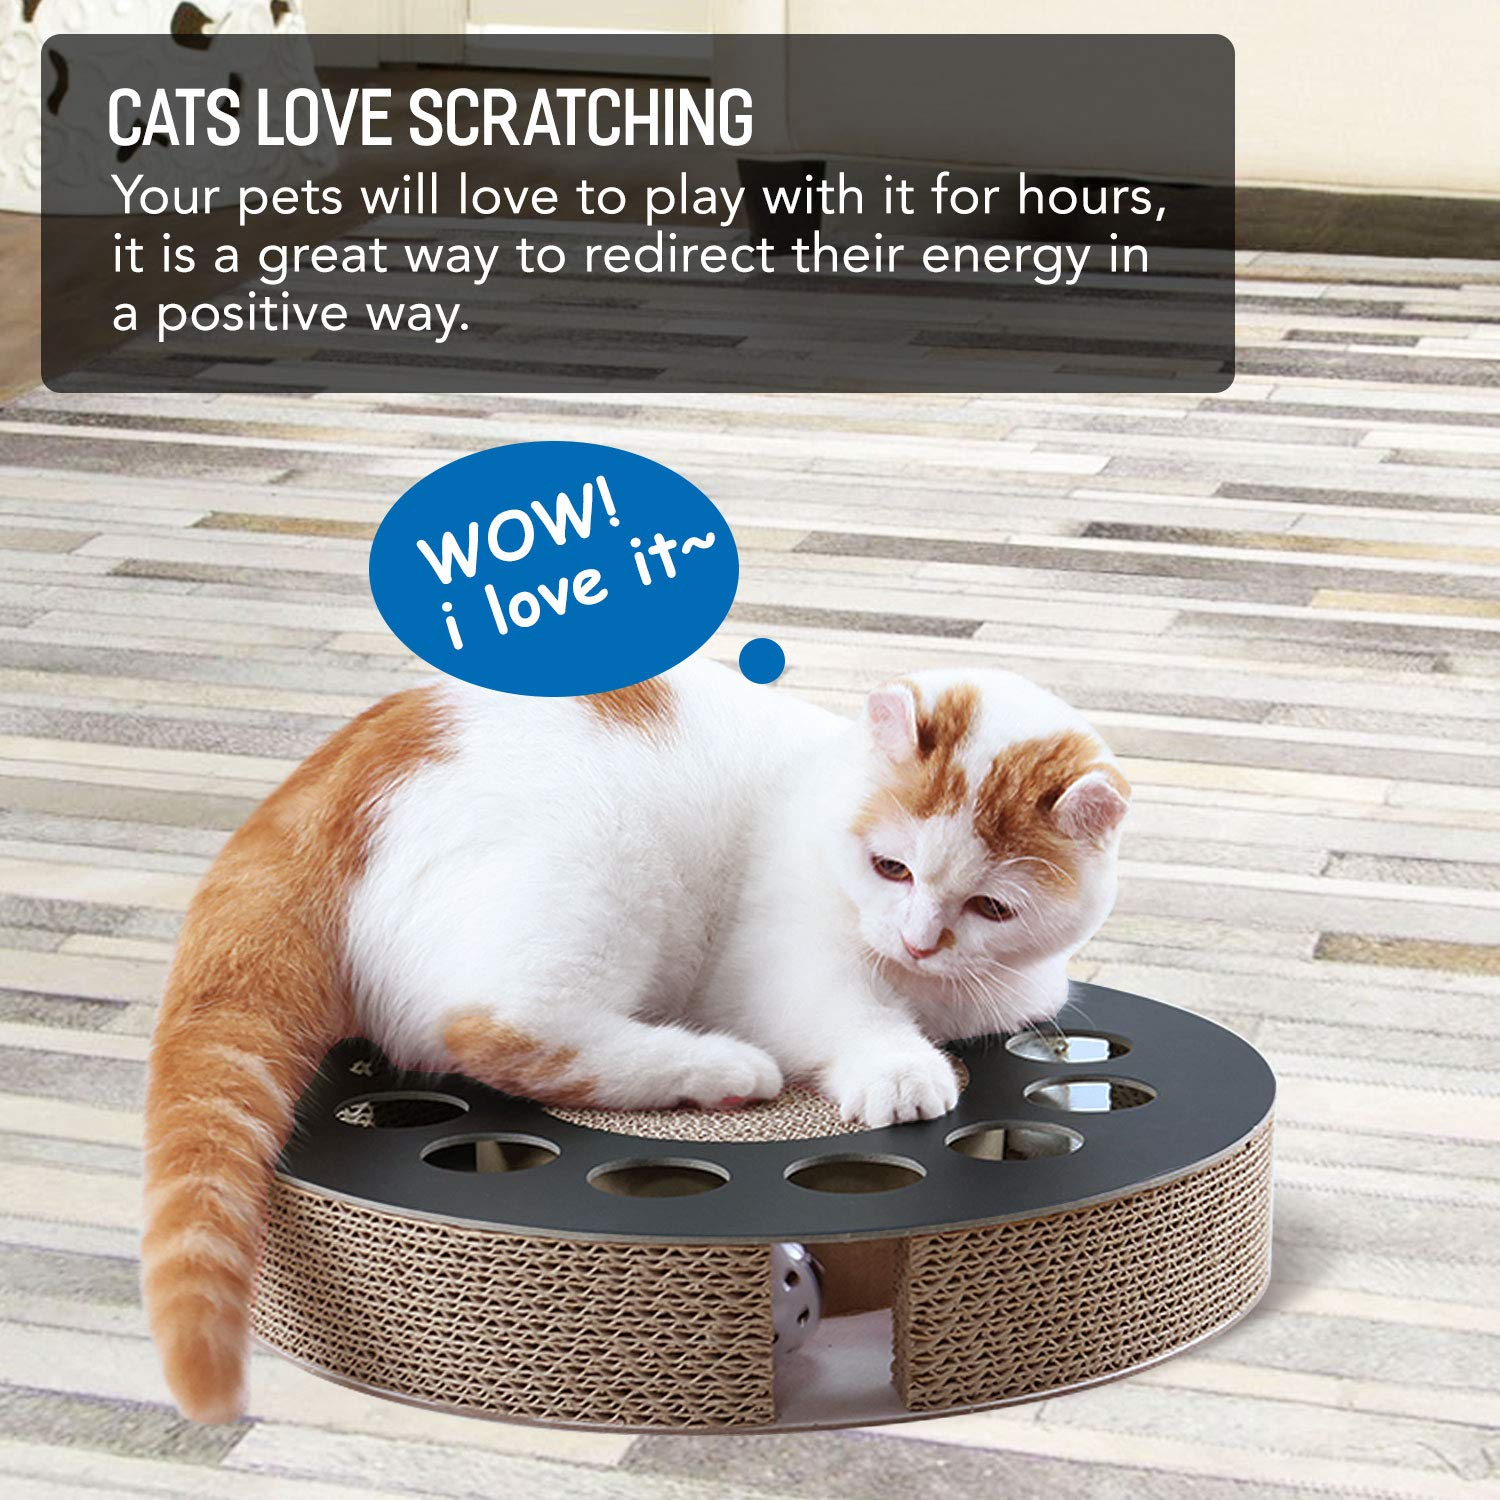 Round Shape Cat Scratcher Cardboard Board Pads with Catnip Durable Recycle Pad Toy Prevents Furniture Damage ScratchMe Cat Scratching Post Lounge Bed